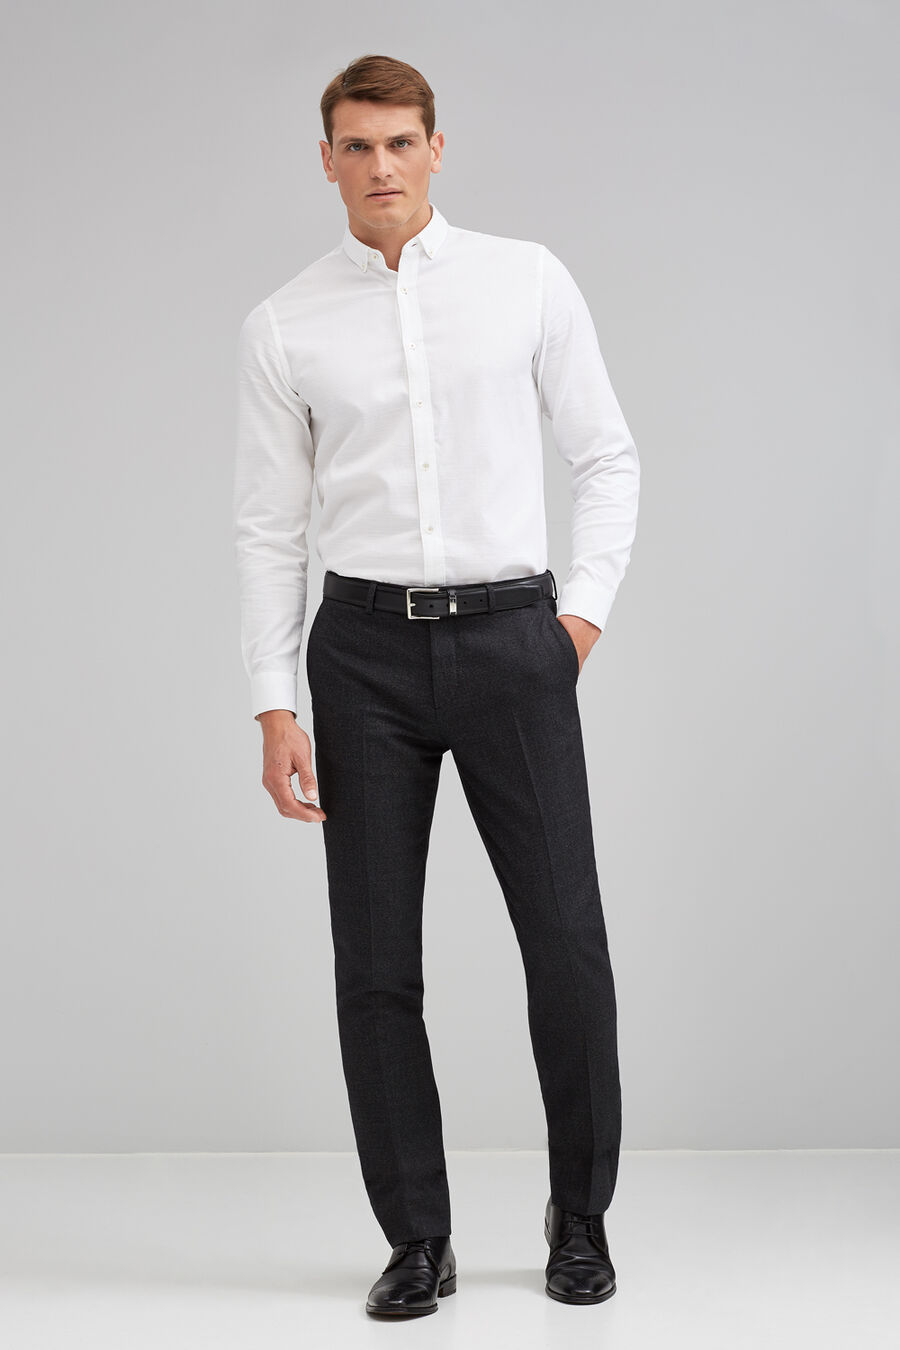 Tailored fit trouser separate